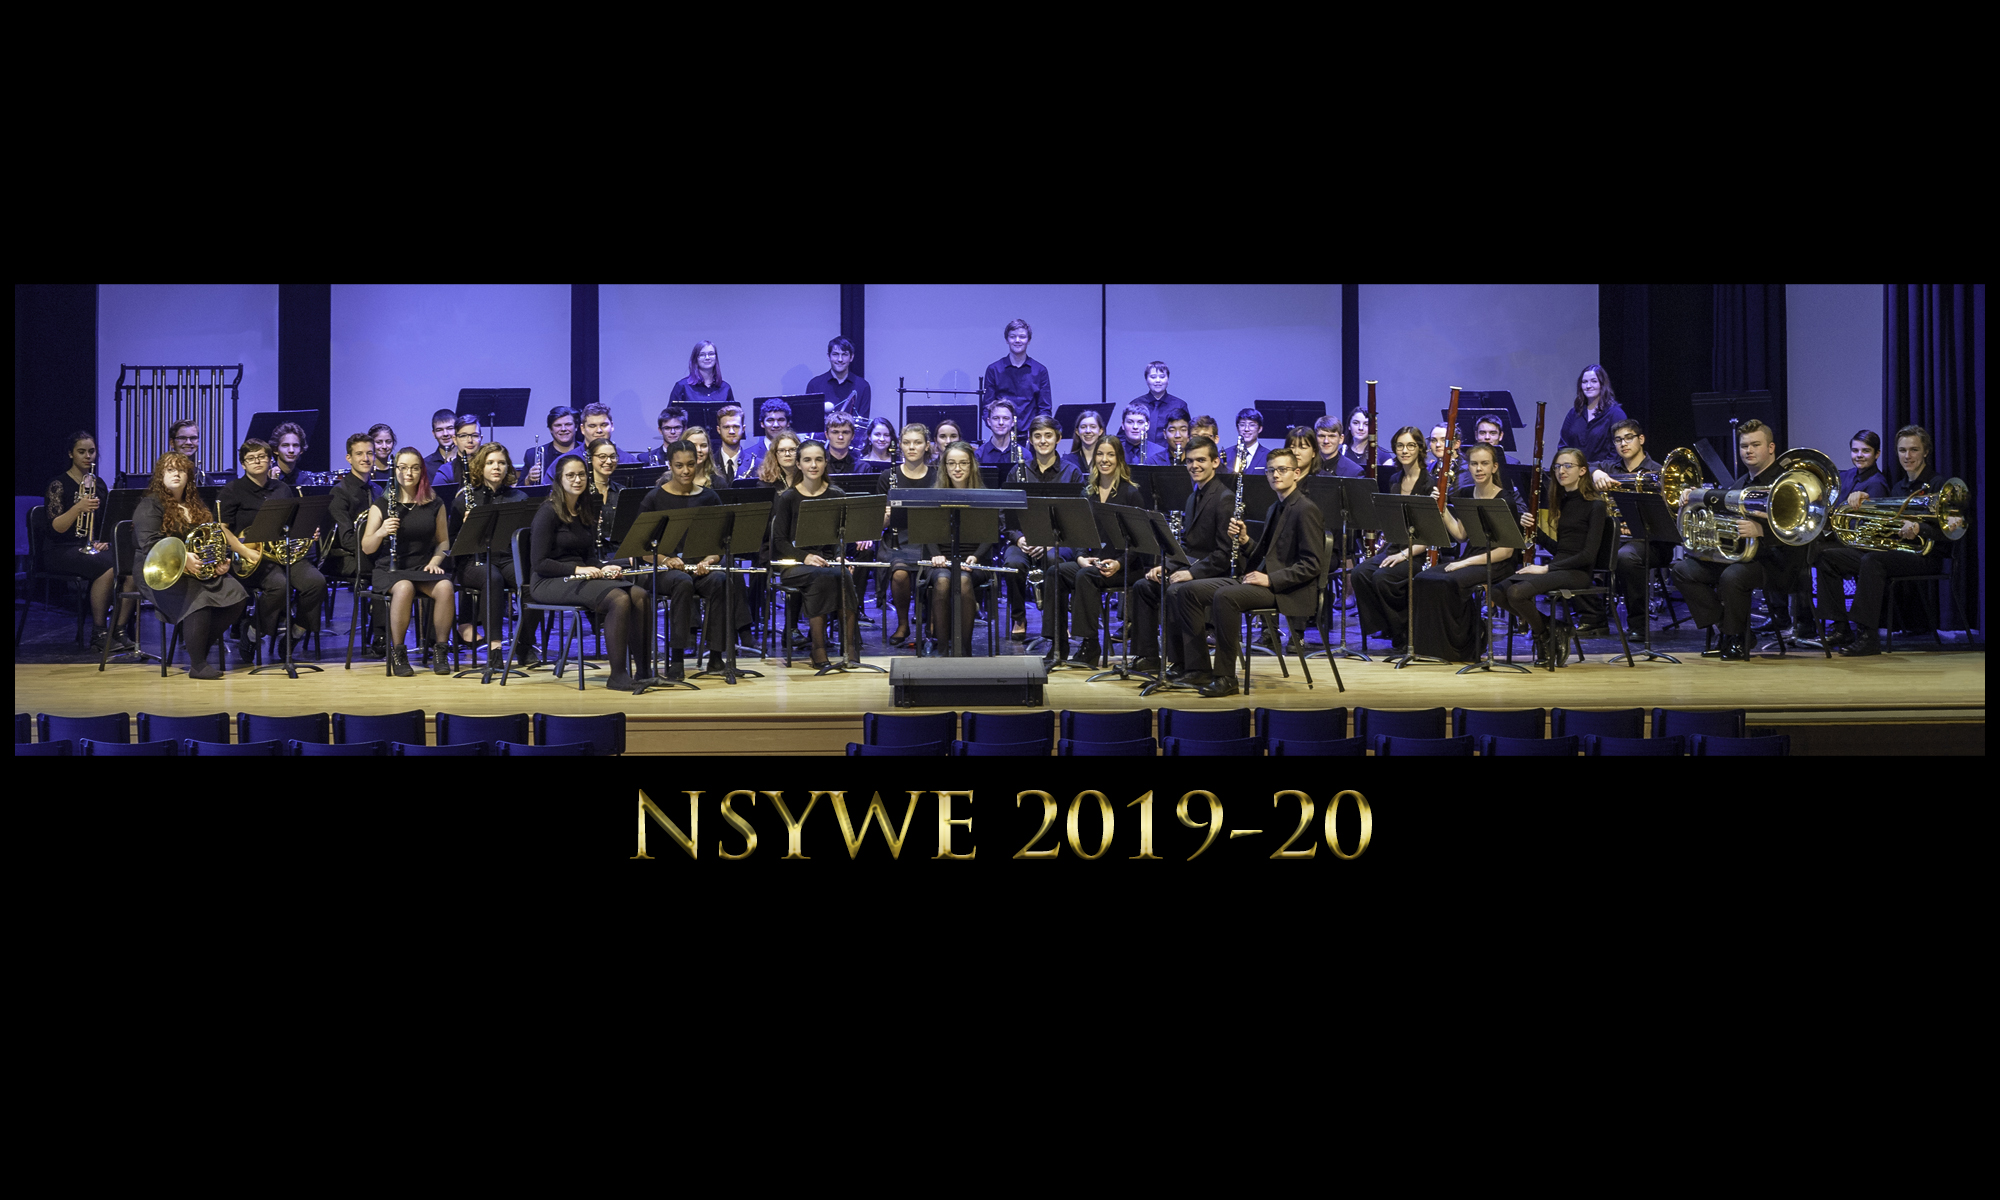 Nova Scotia Youth Wind Ensemble